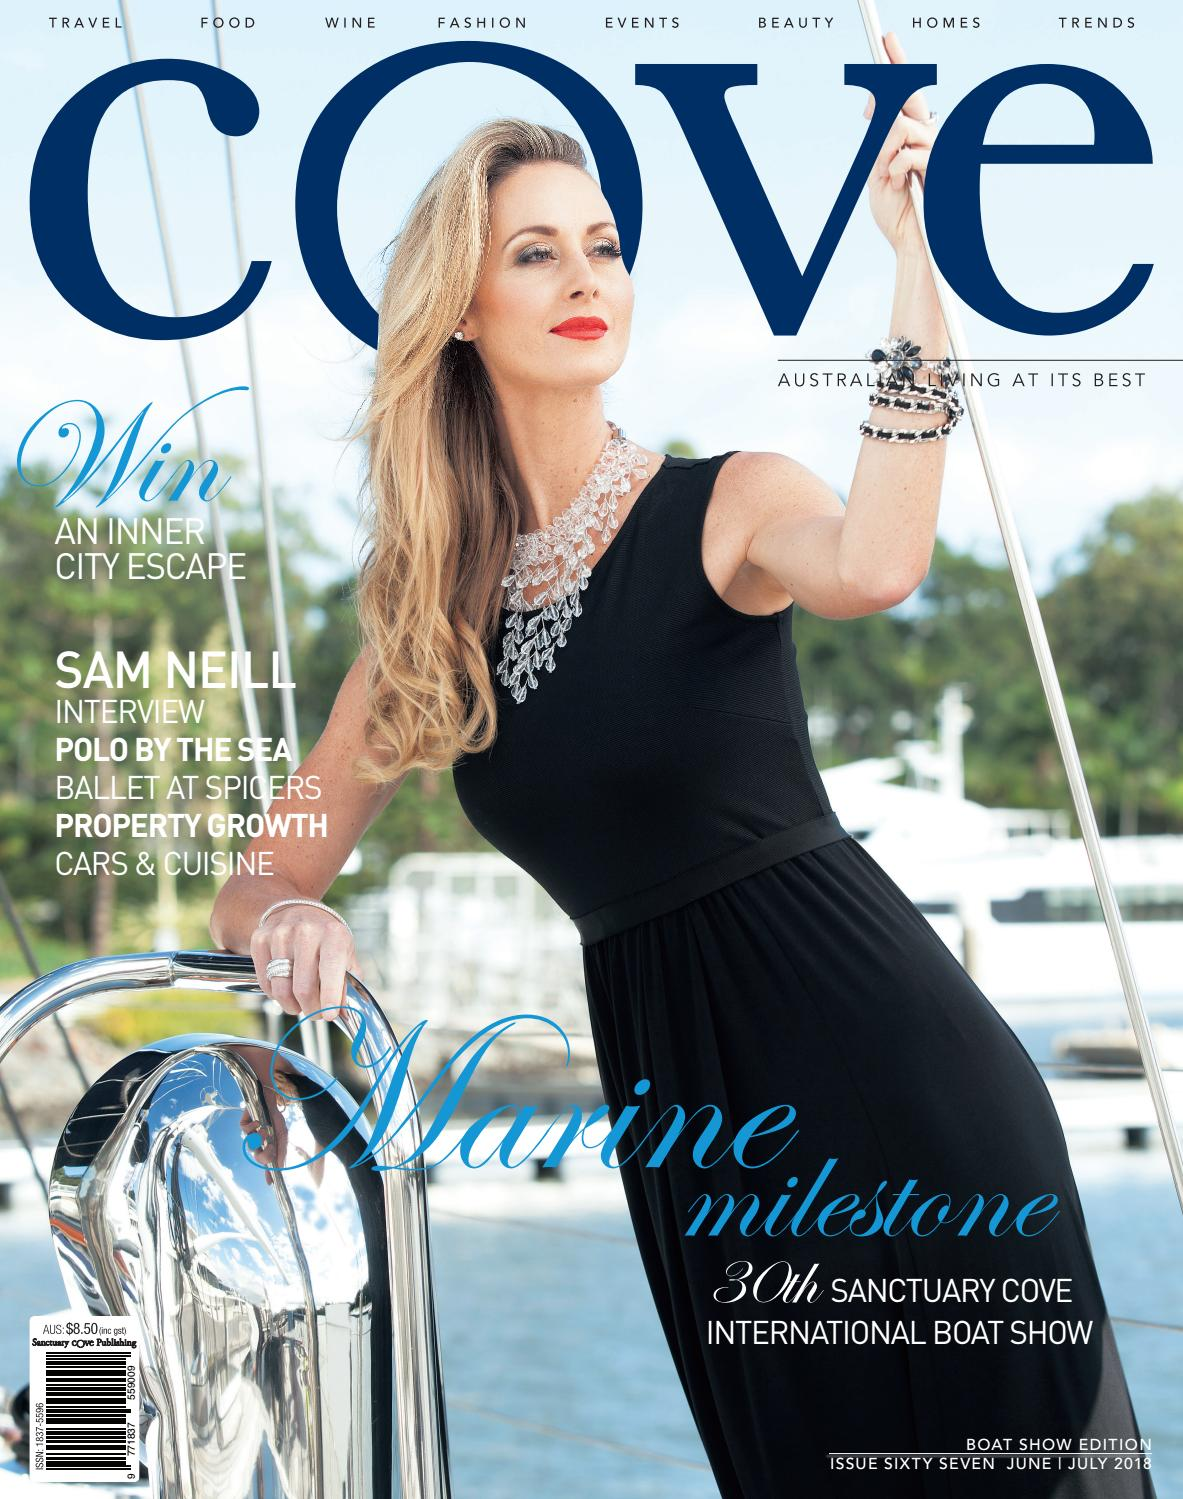 455255d57a7a The Cove Magazine by The Cove Magazine - issuu